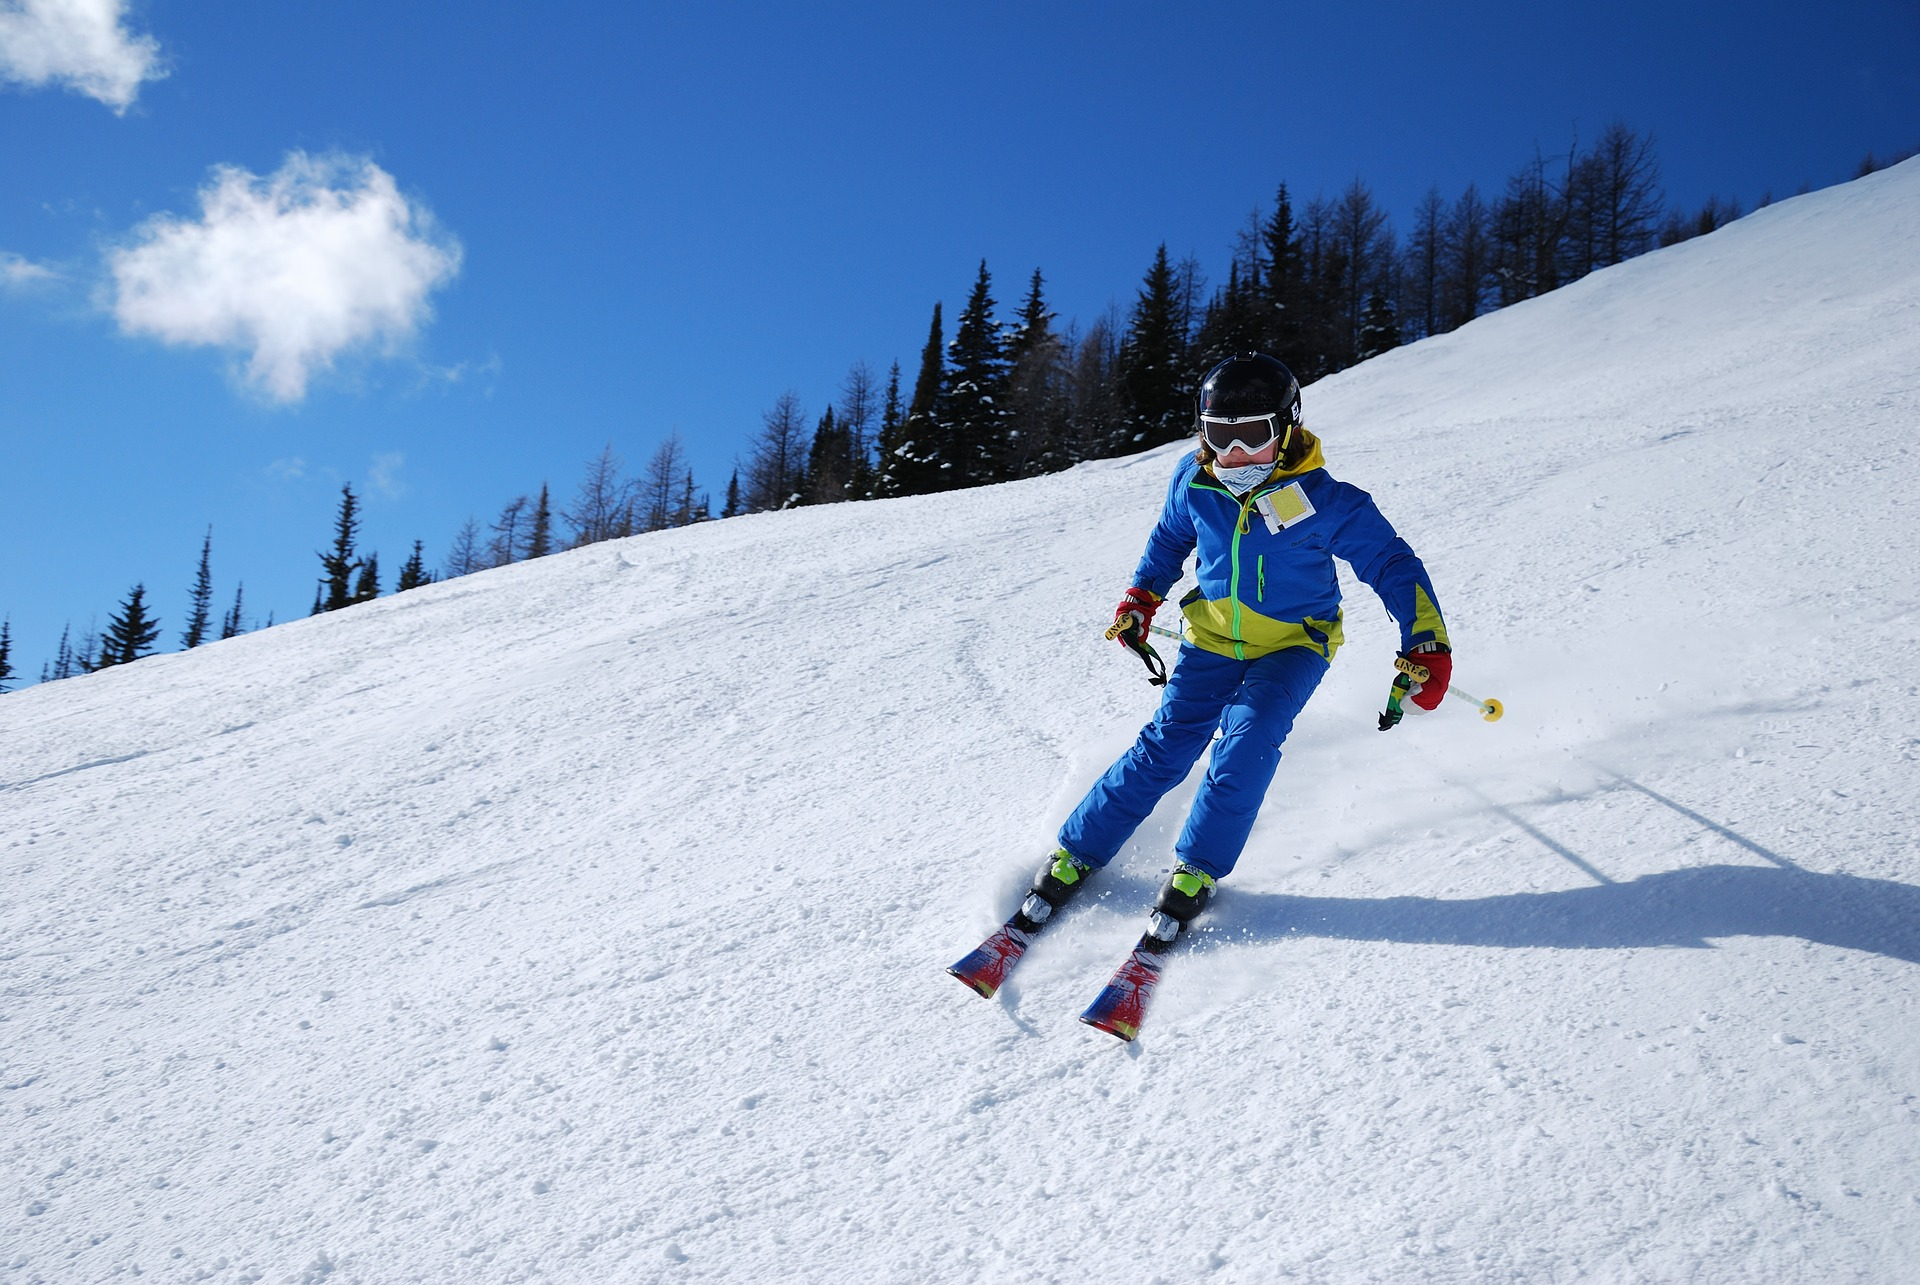 Downhill skiing in blue outfit